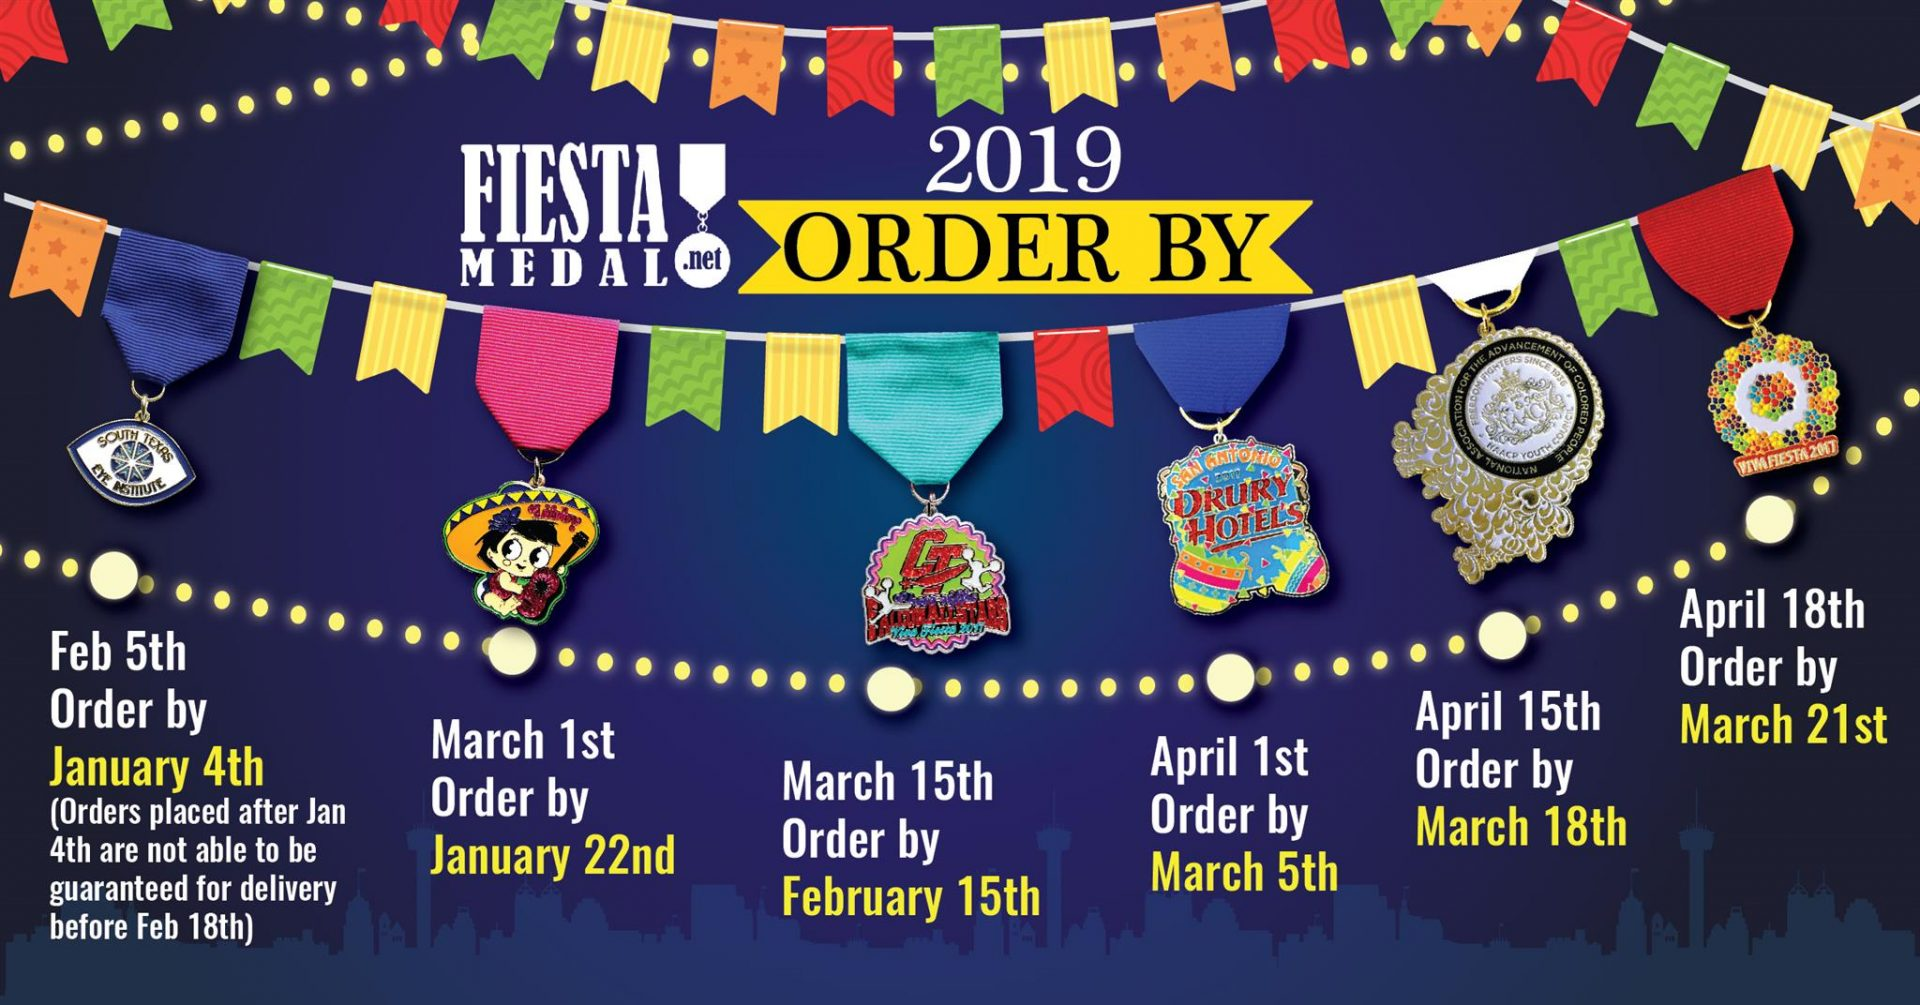 Fiesta Medal 2018 Order By Inforgraphic